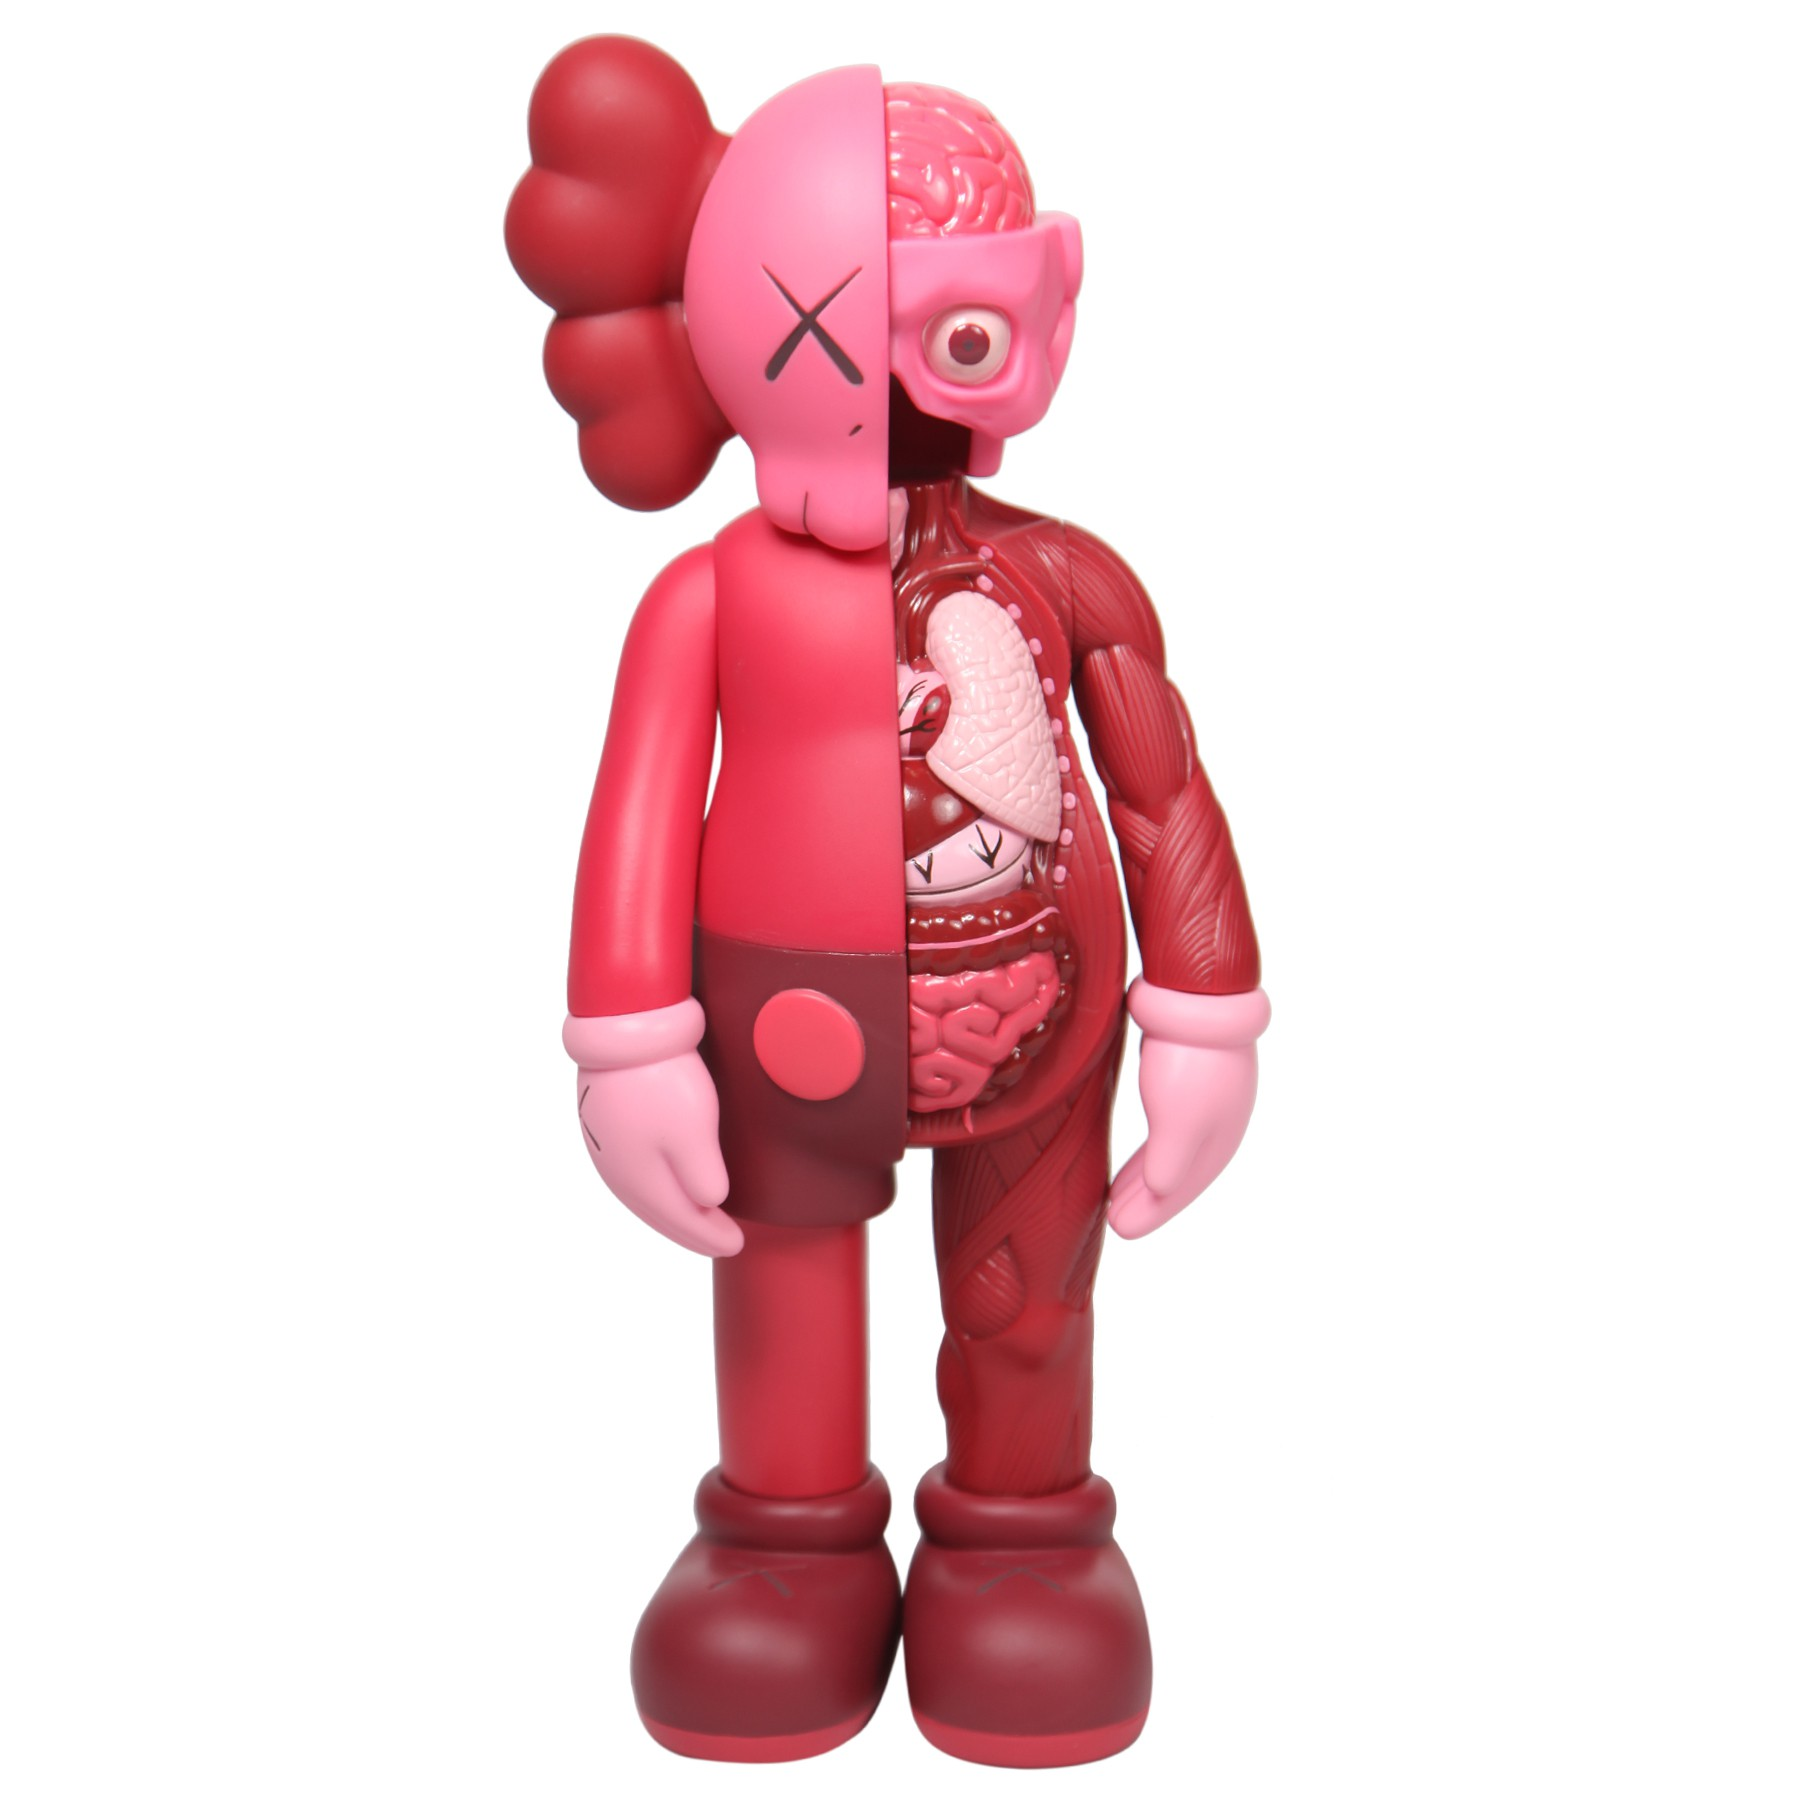 - MEDICOM TOY x KAWS COMPANION BLUCH FLYED (OPEN EDITION)